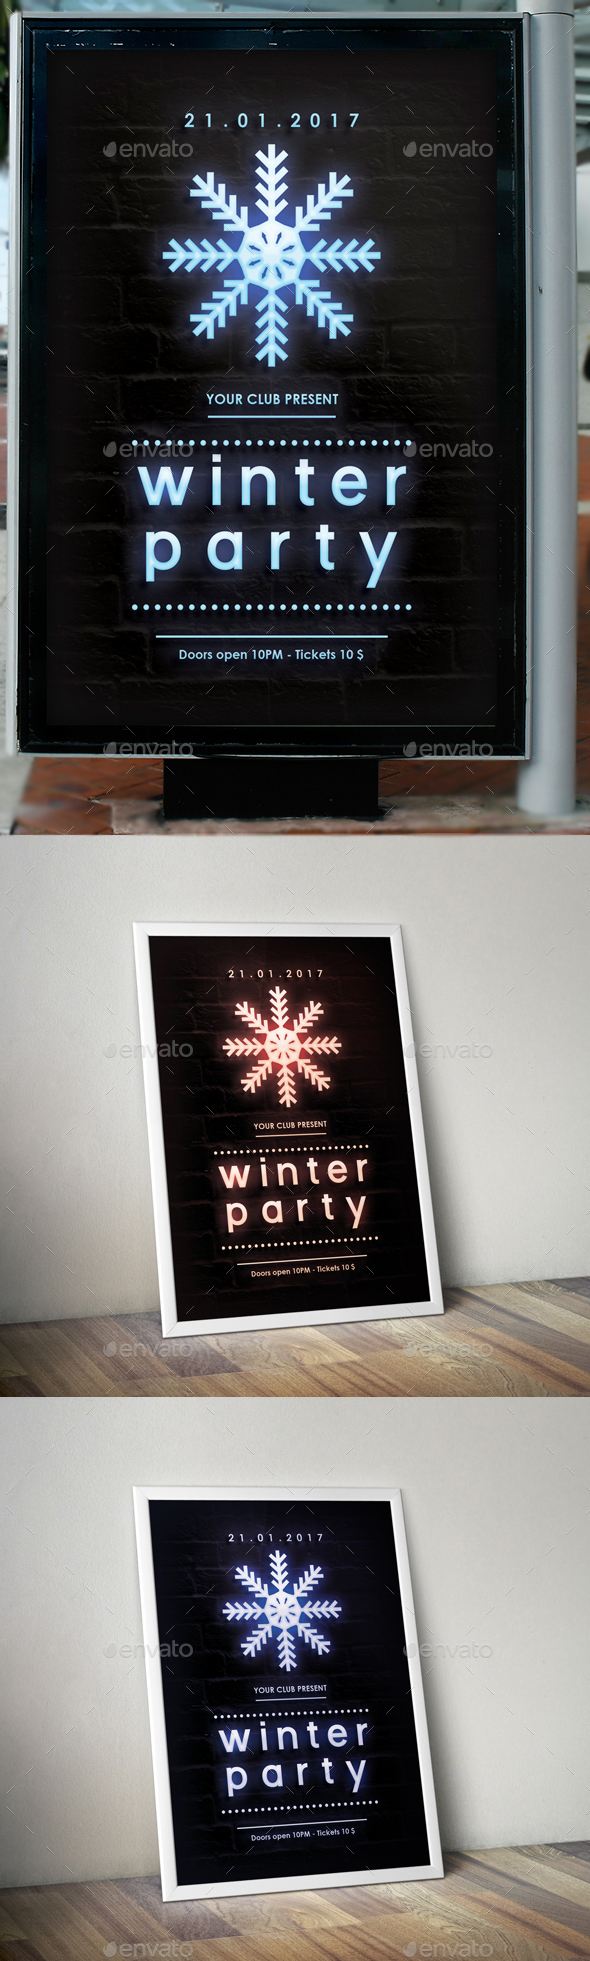 Winter Party Neon Poster - Clubs & Parties Events